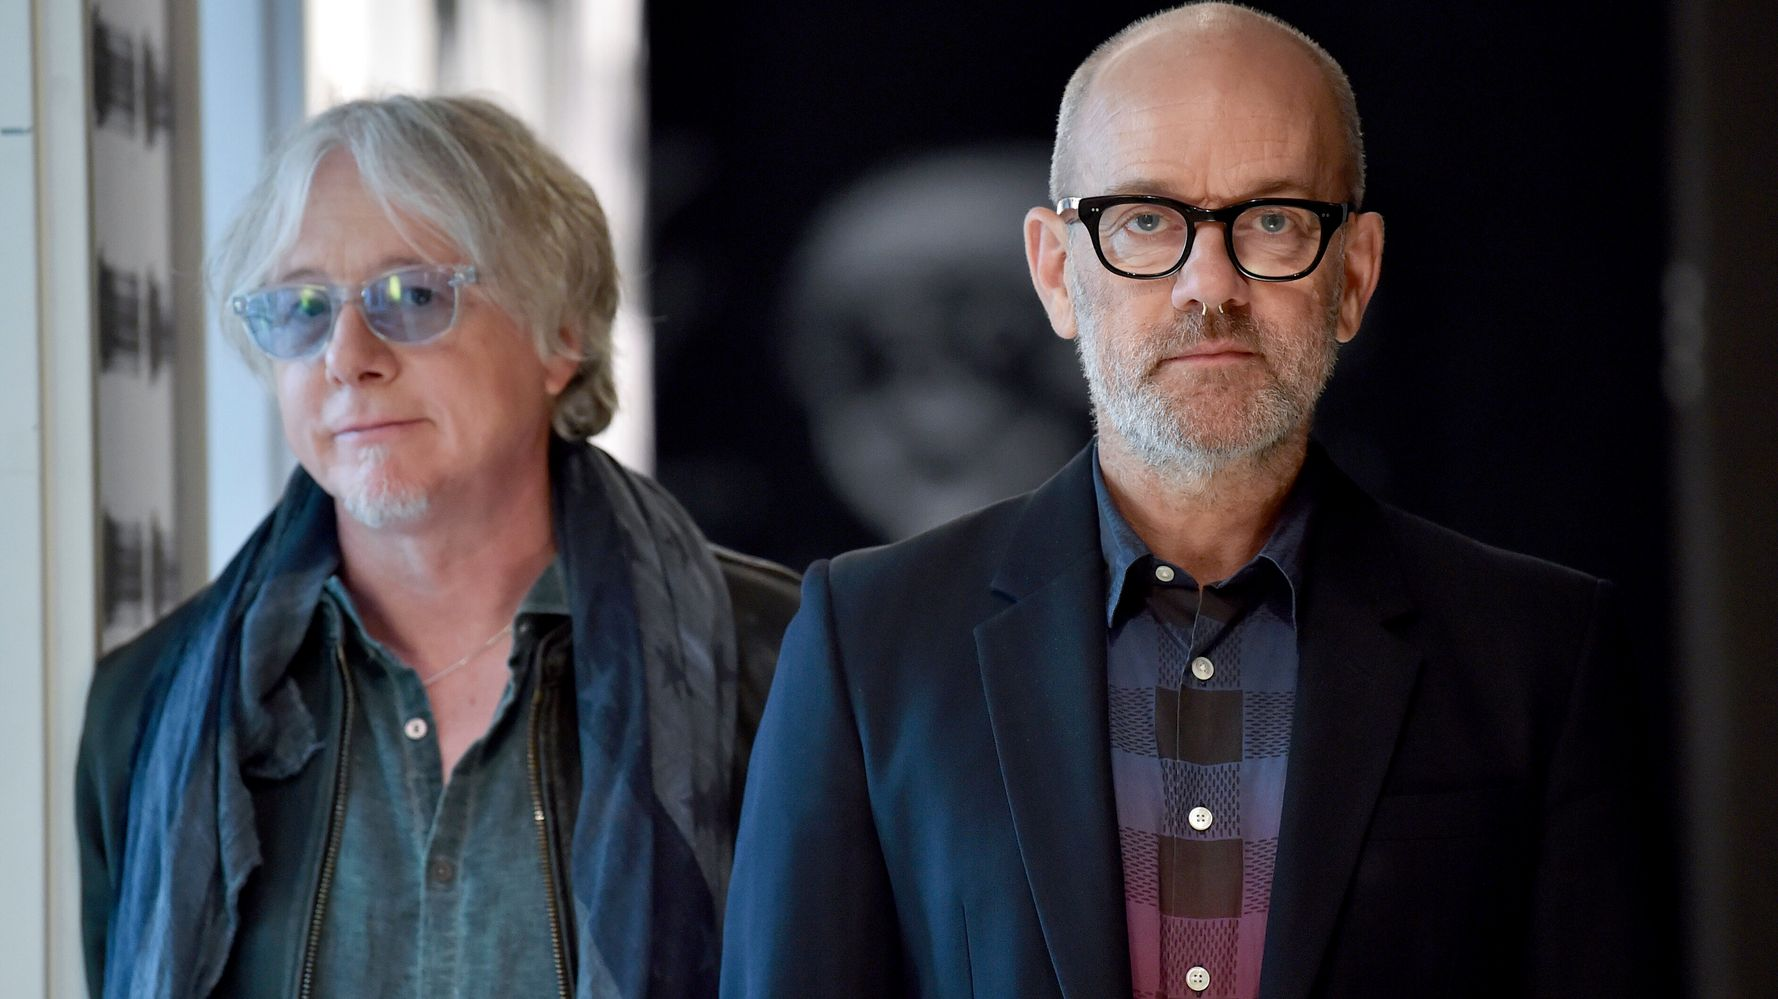 R.E.M. Considers Legal Action To Stop Trump From Using The Band's Songs